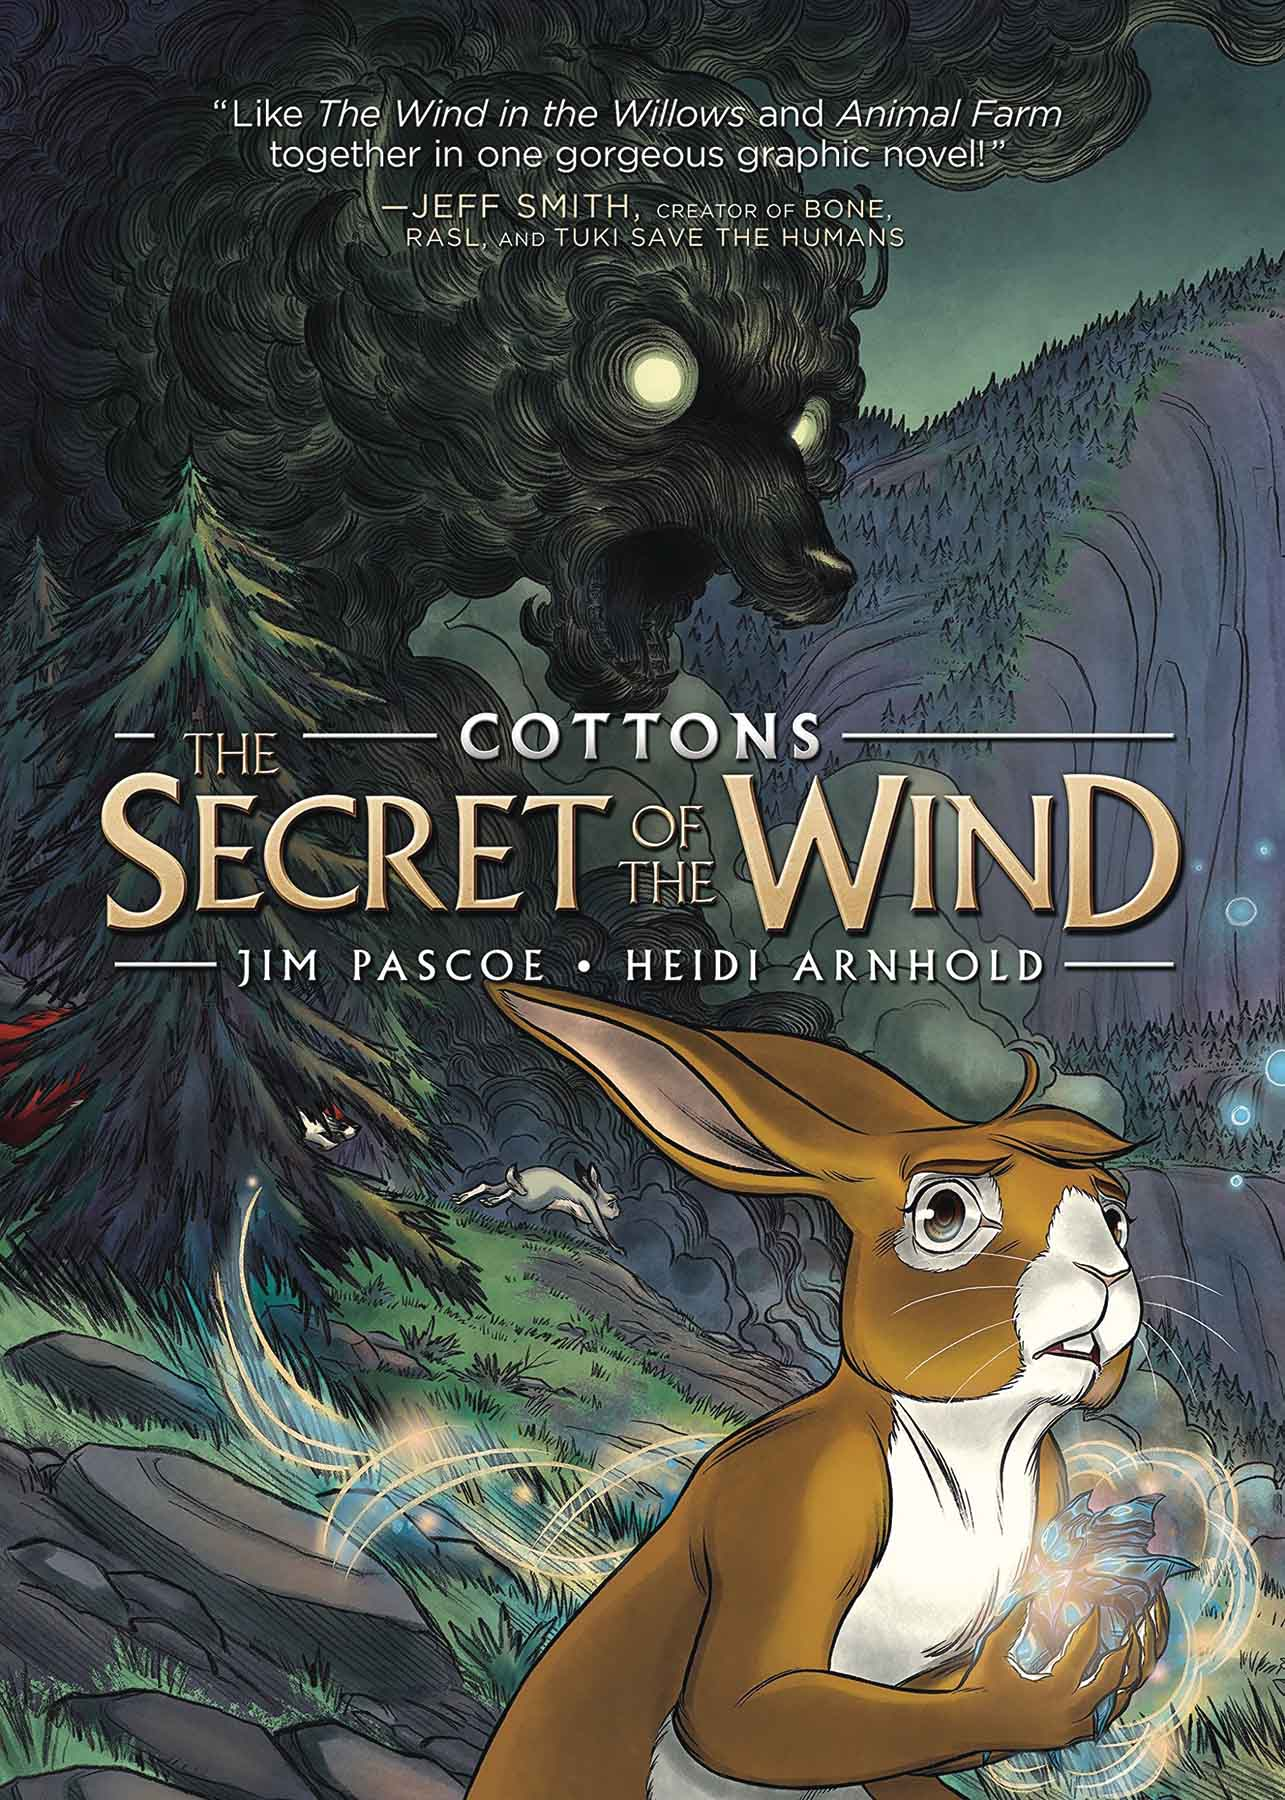 Cottons: Secret of Wind